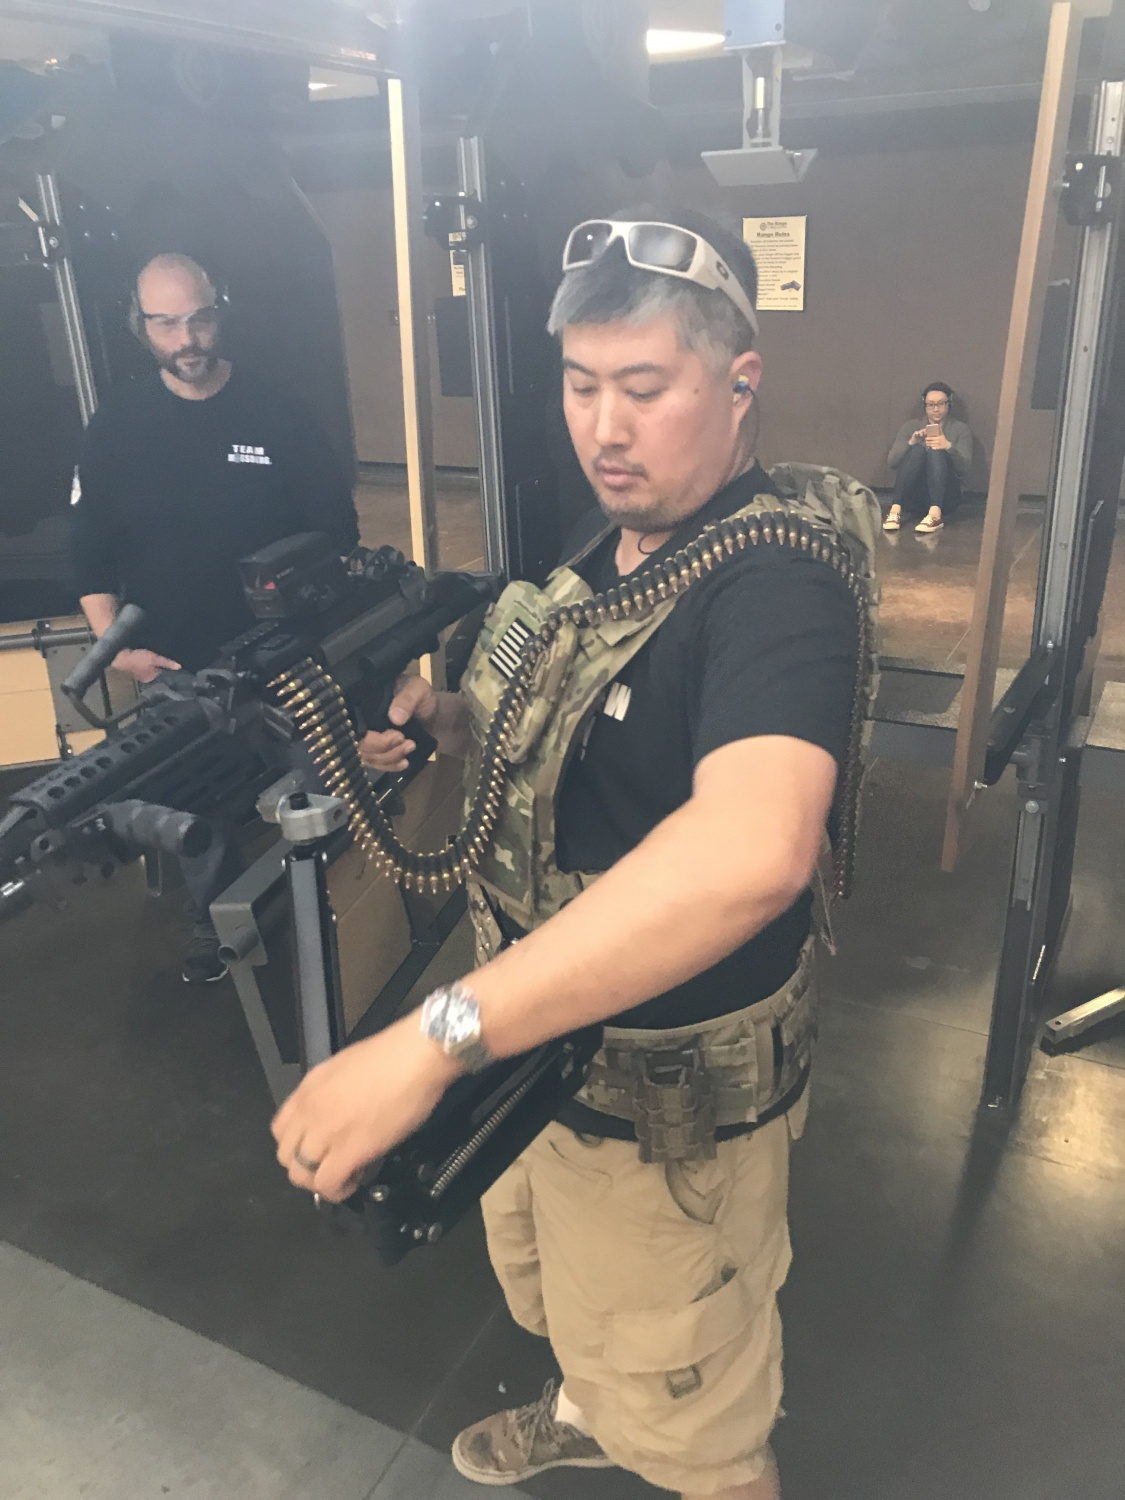 Nick C setting up a M249S on his steadicam third arm with a 200 rd belt drapped over his shoulder